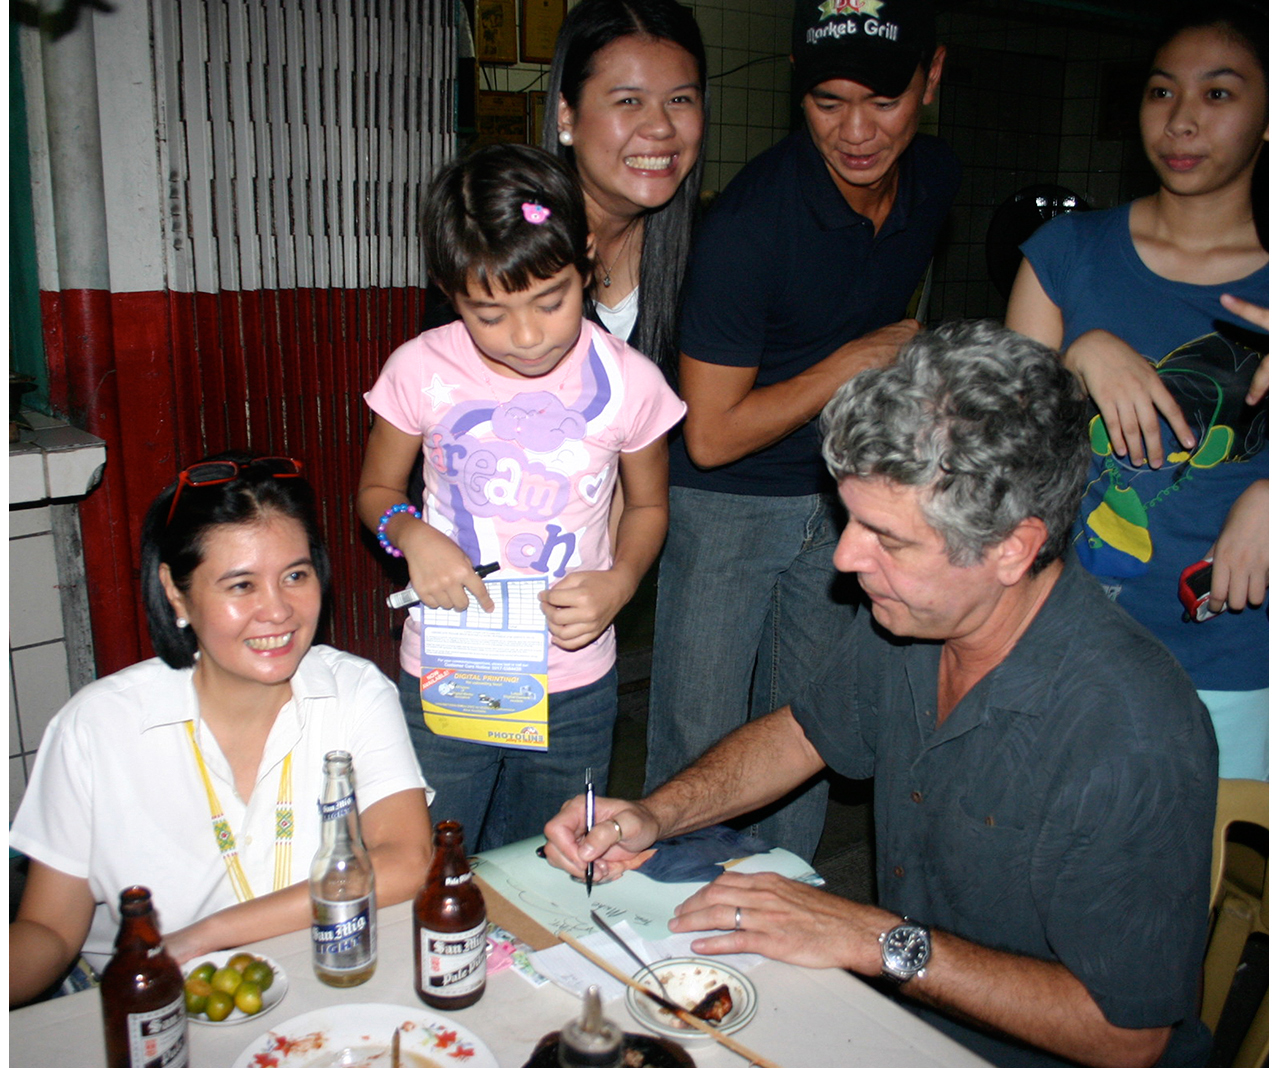 Obliging his fans with photo ops and book signing at Aling Lucing Sisig, Angeles City, October 2008. (Photo courtesy of Claude Tayag)